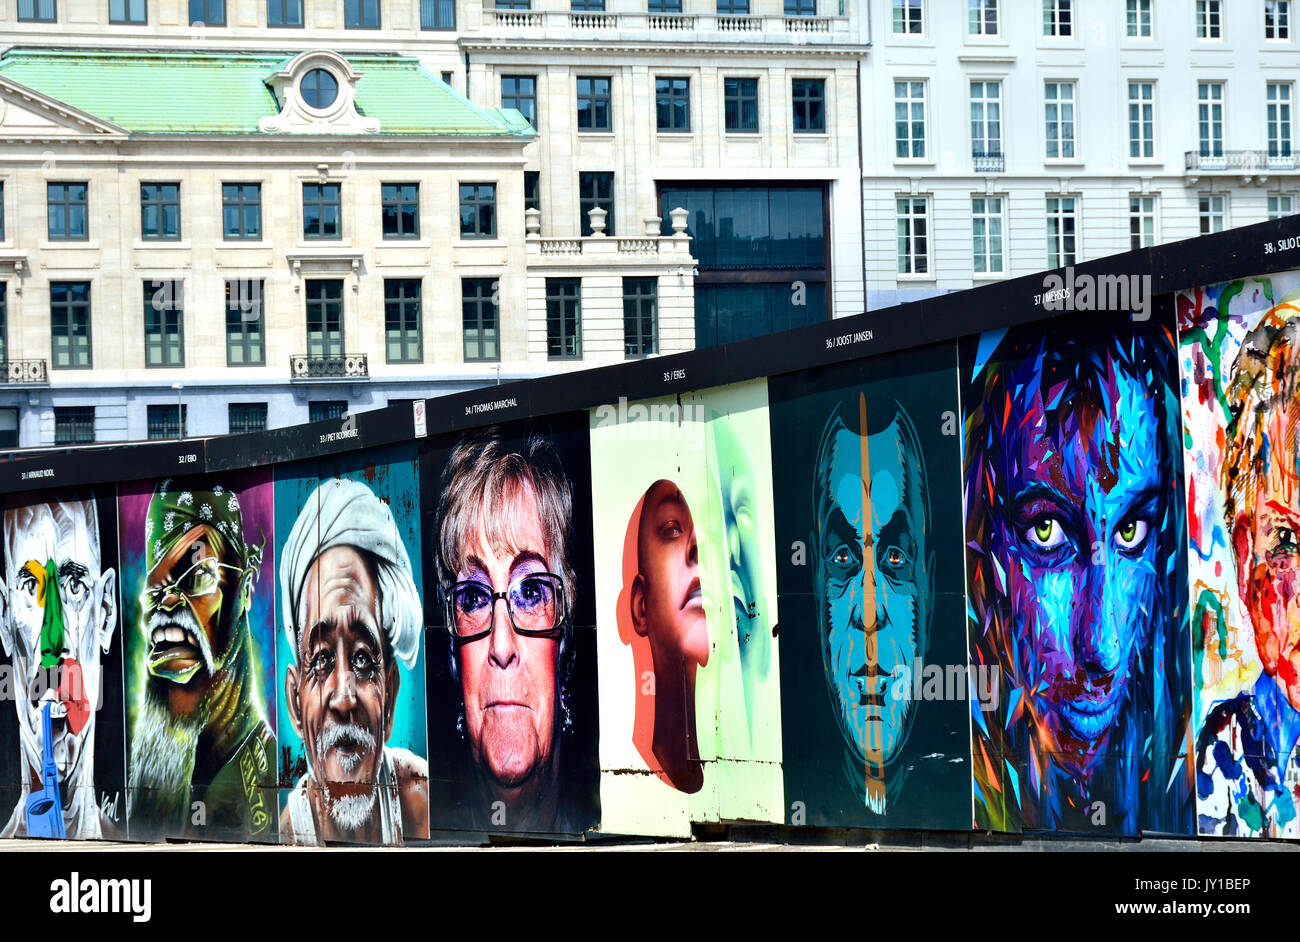 Brussels, Belgium. Street art in Rue Ravenstein - 'Interfaces': 40 portraits by 40 artists on temporary walls around building works. Initiative by ... - Stock Image